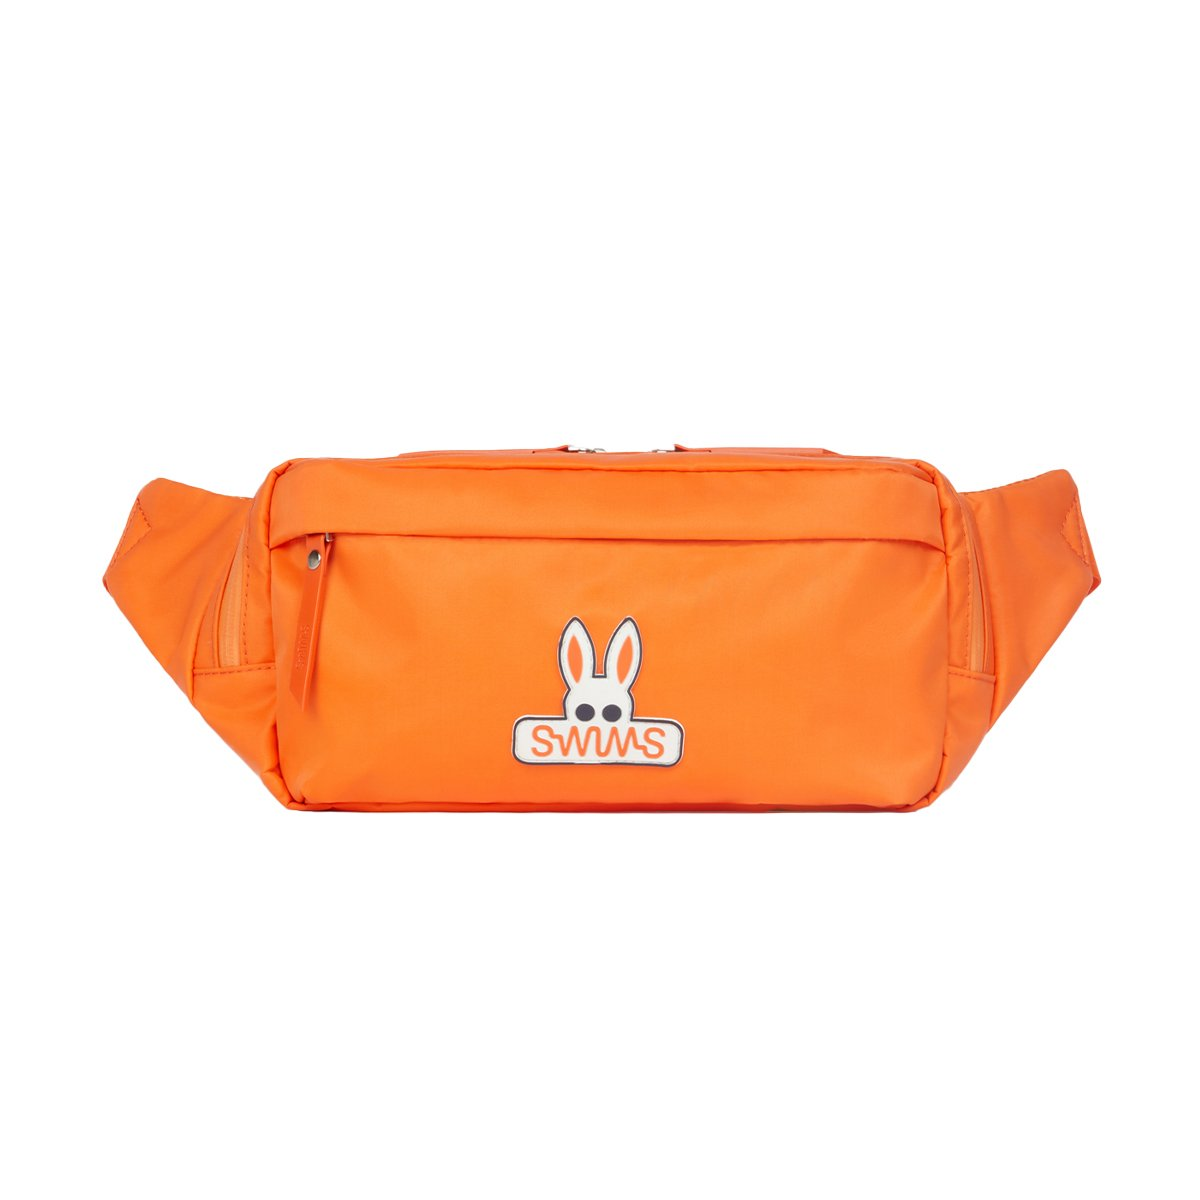 Psycho Bunny x SWIMS Belt Bag - background::white,variant::orange